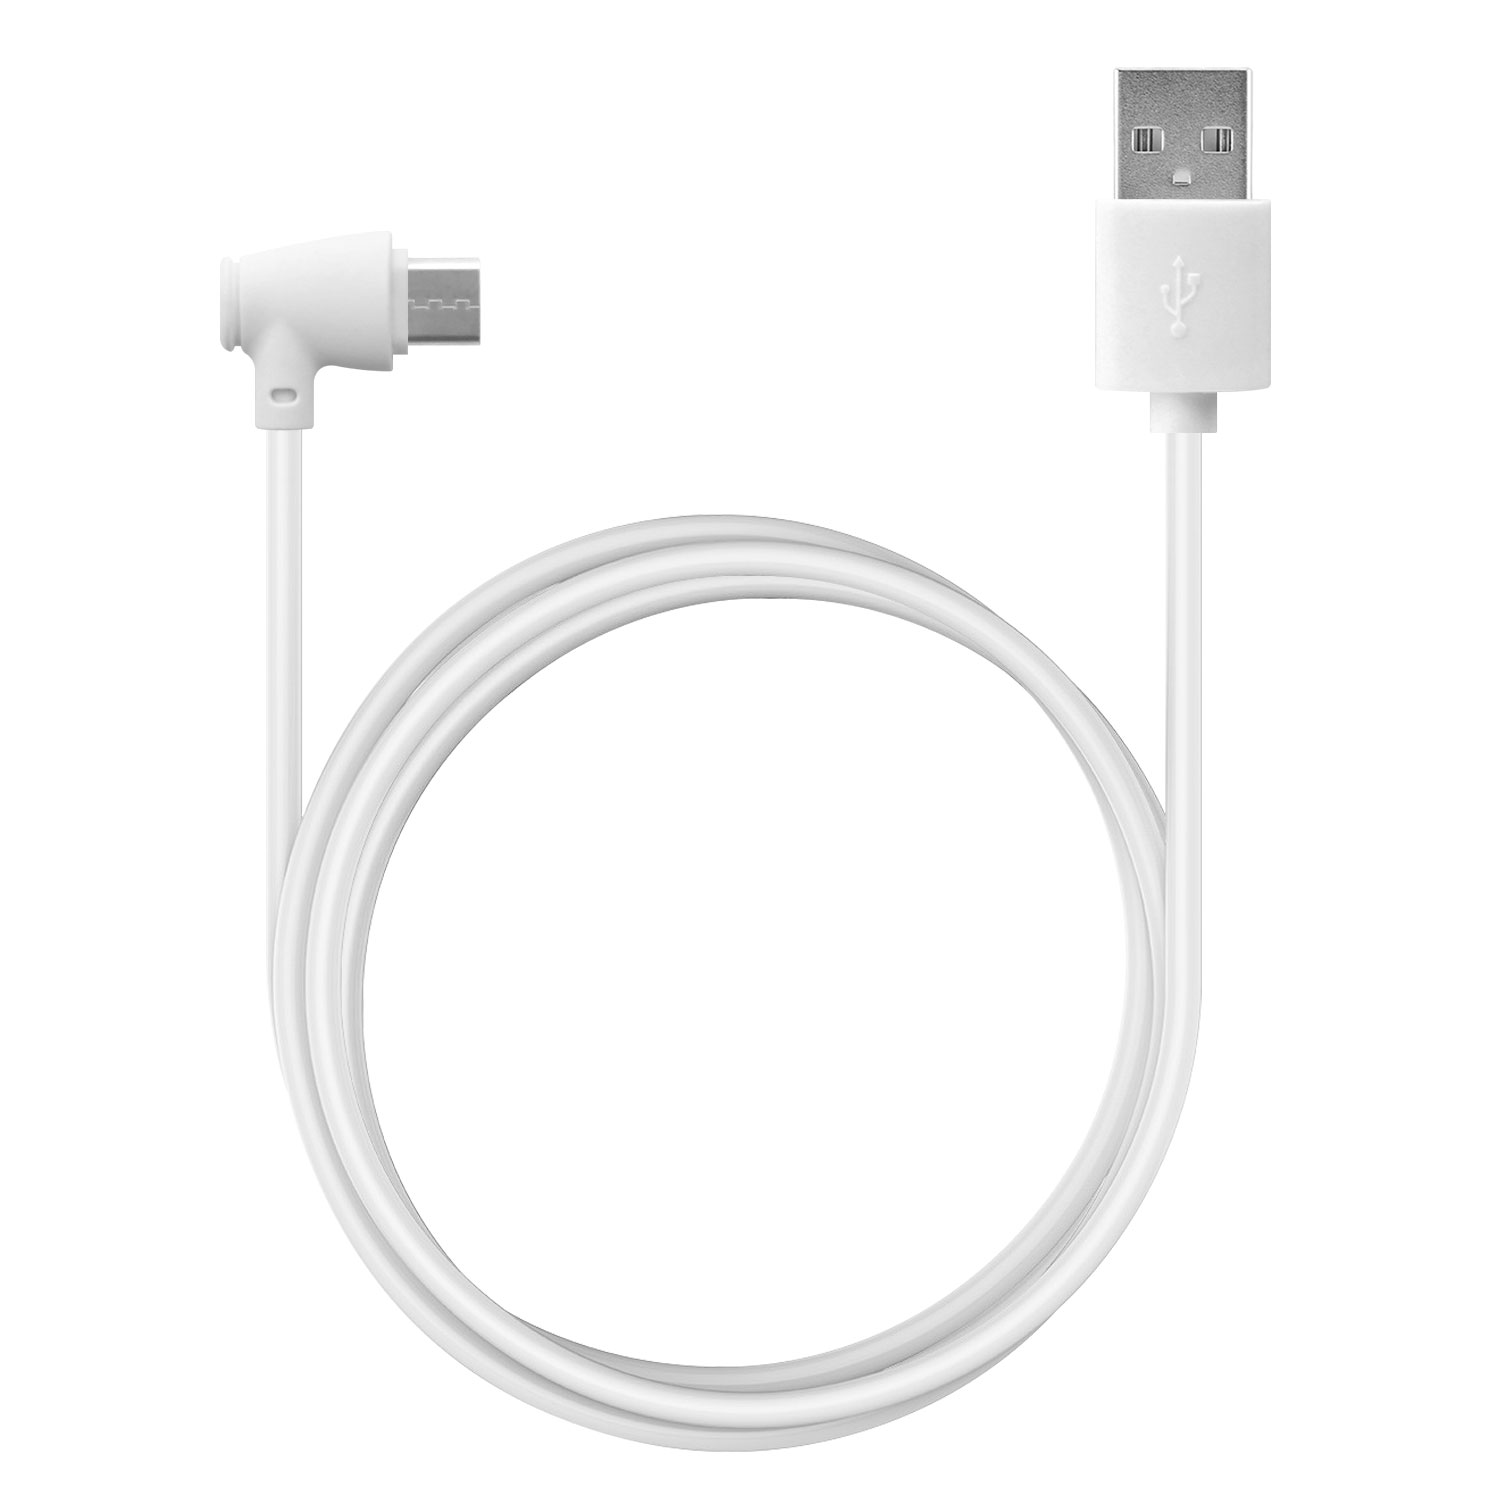 Sony Xperia XA1 USB Type-C To USB Type-A Data Charging Cable White 3.3ft Angled